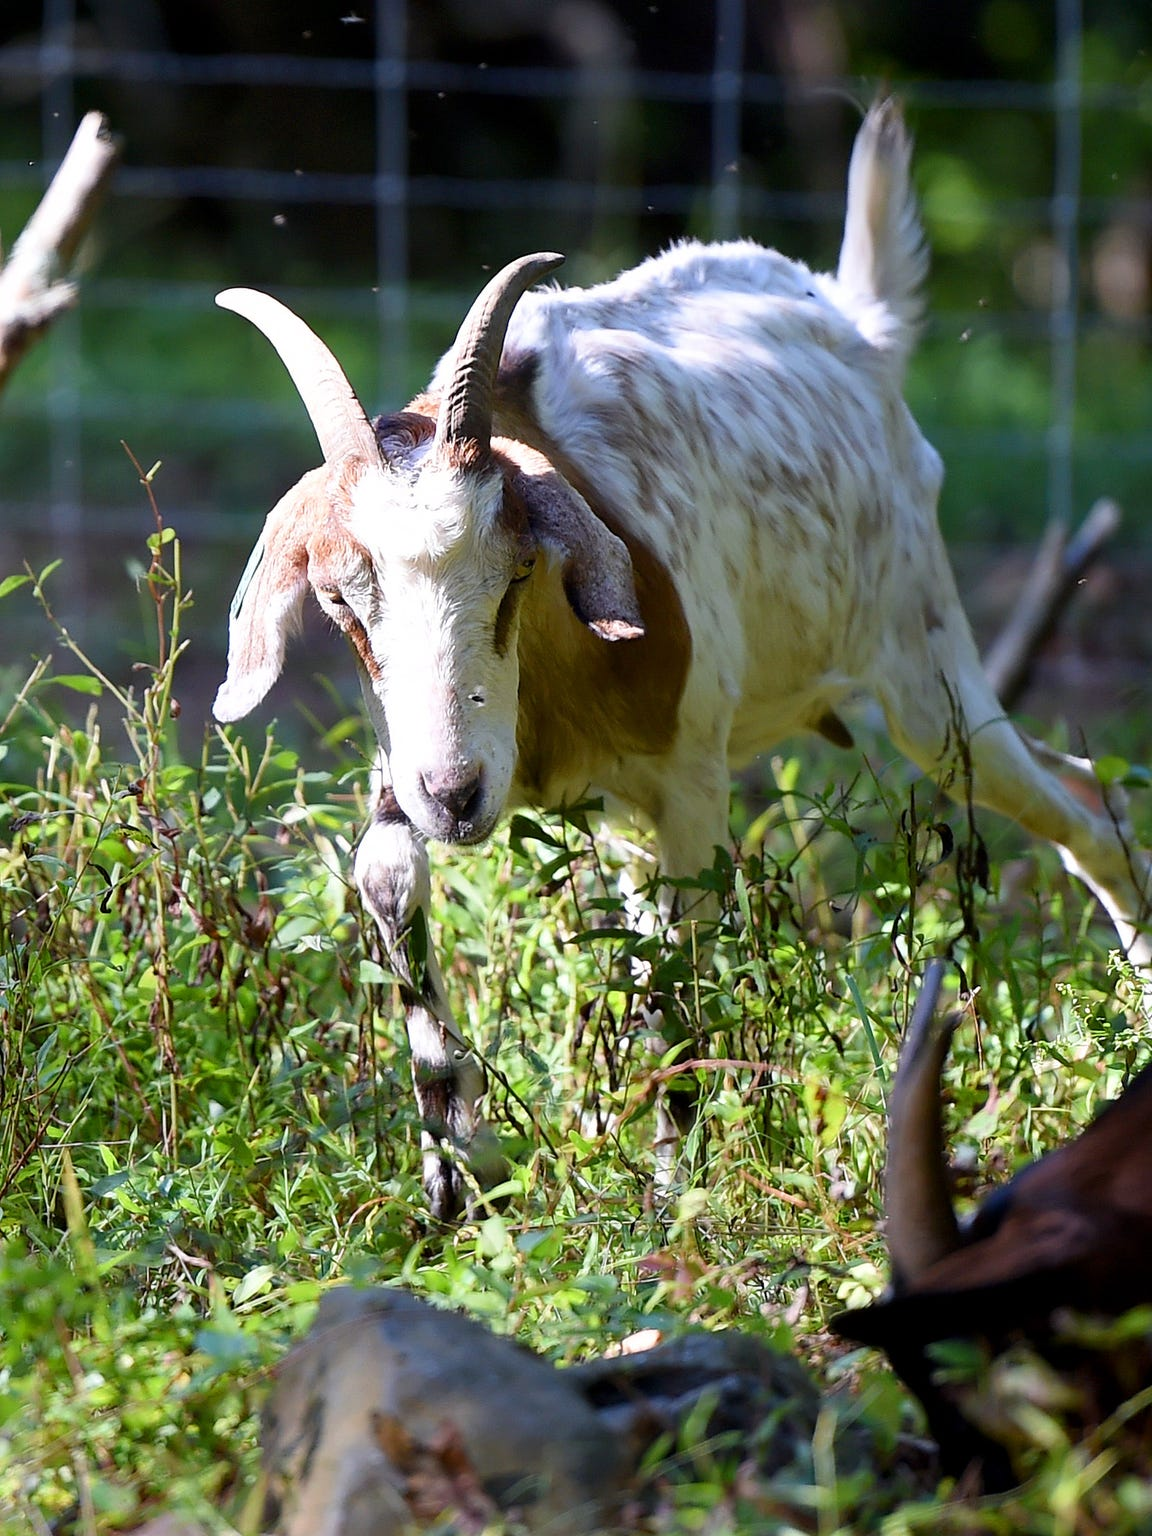 A goat from Goat Busters moves around, feasting on